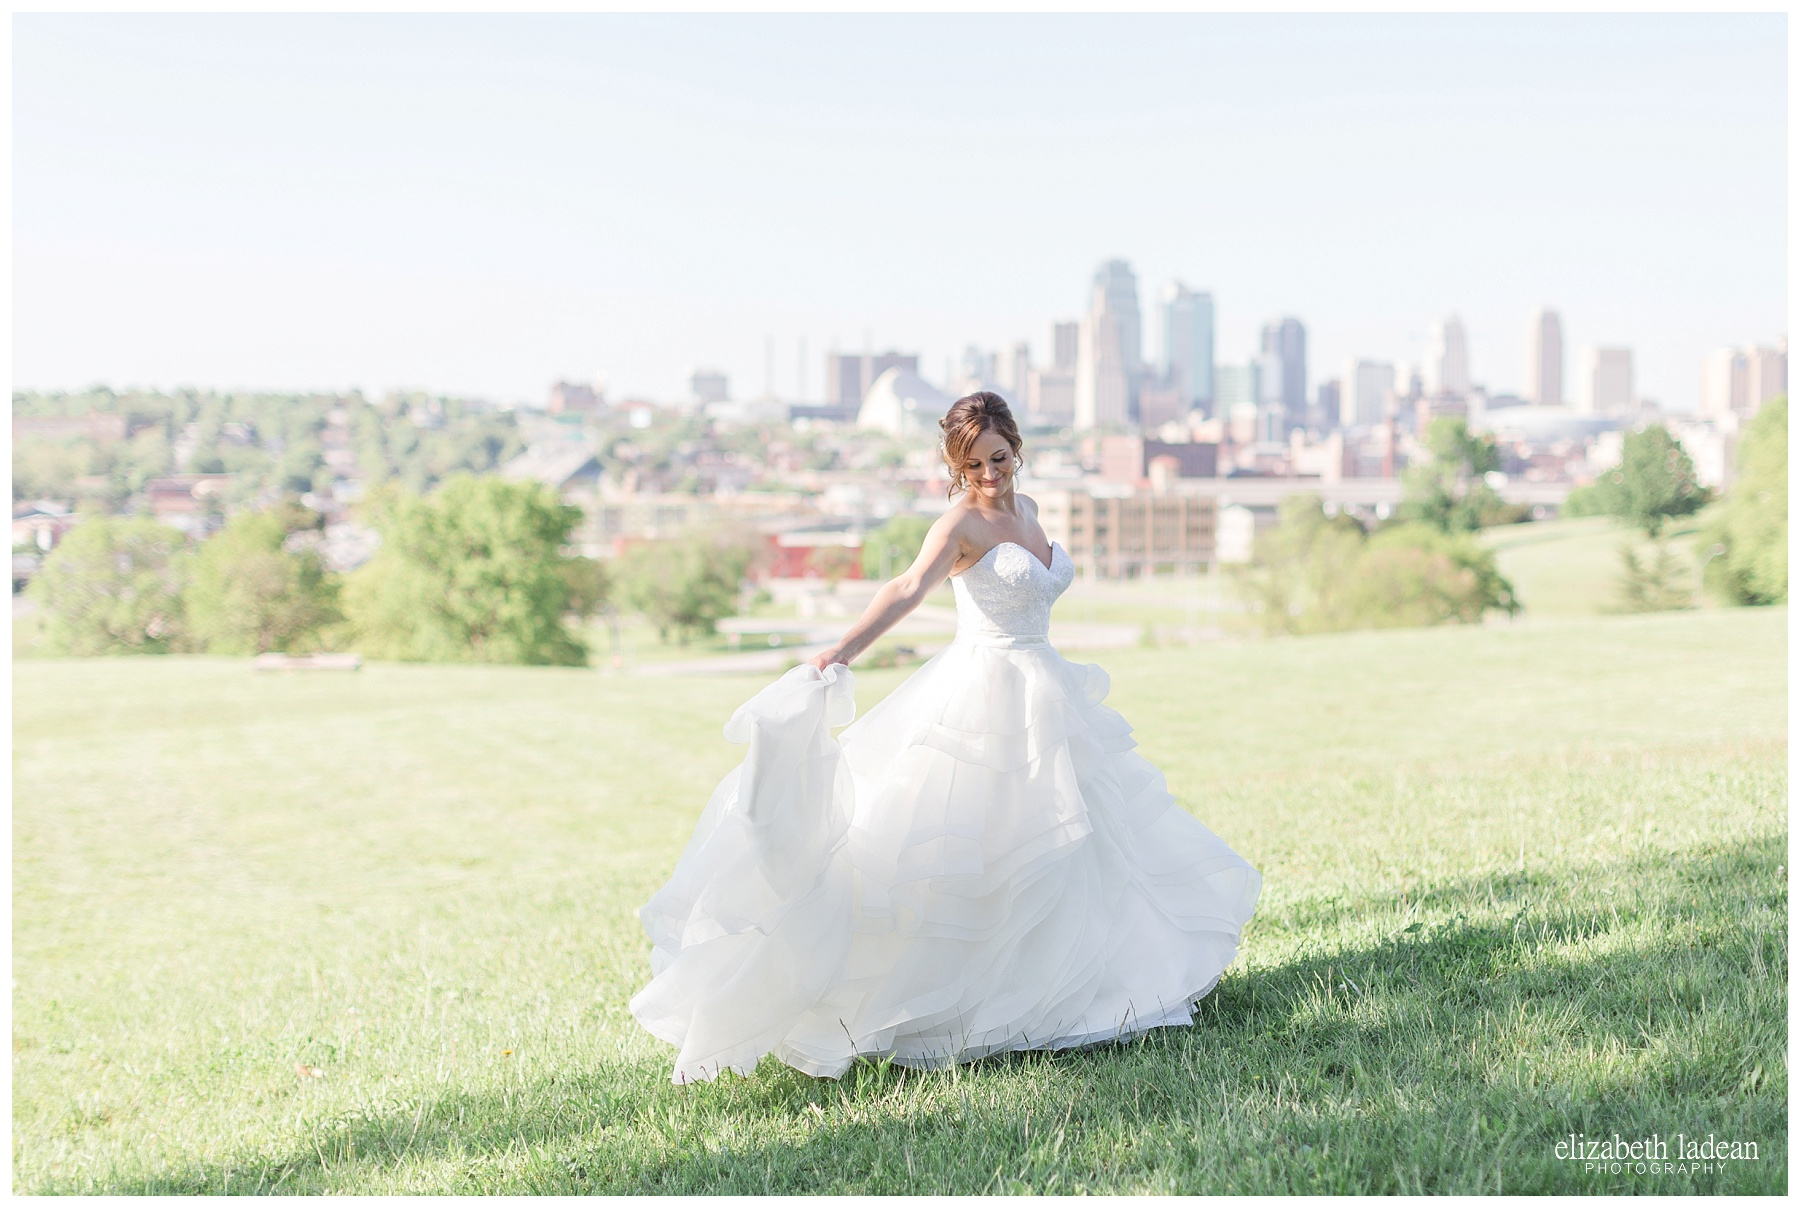 Terrace-on-Grand-Kansas-City-Wedding-Photography-C+J-0506-Elizabeth-Ladean-Photography-photo_0637.jpg